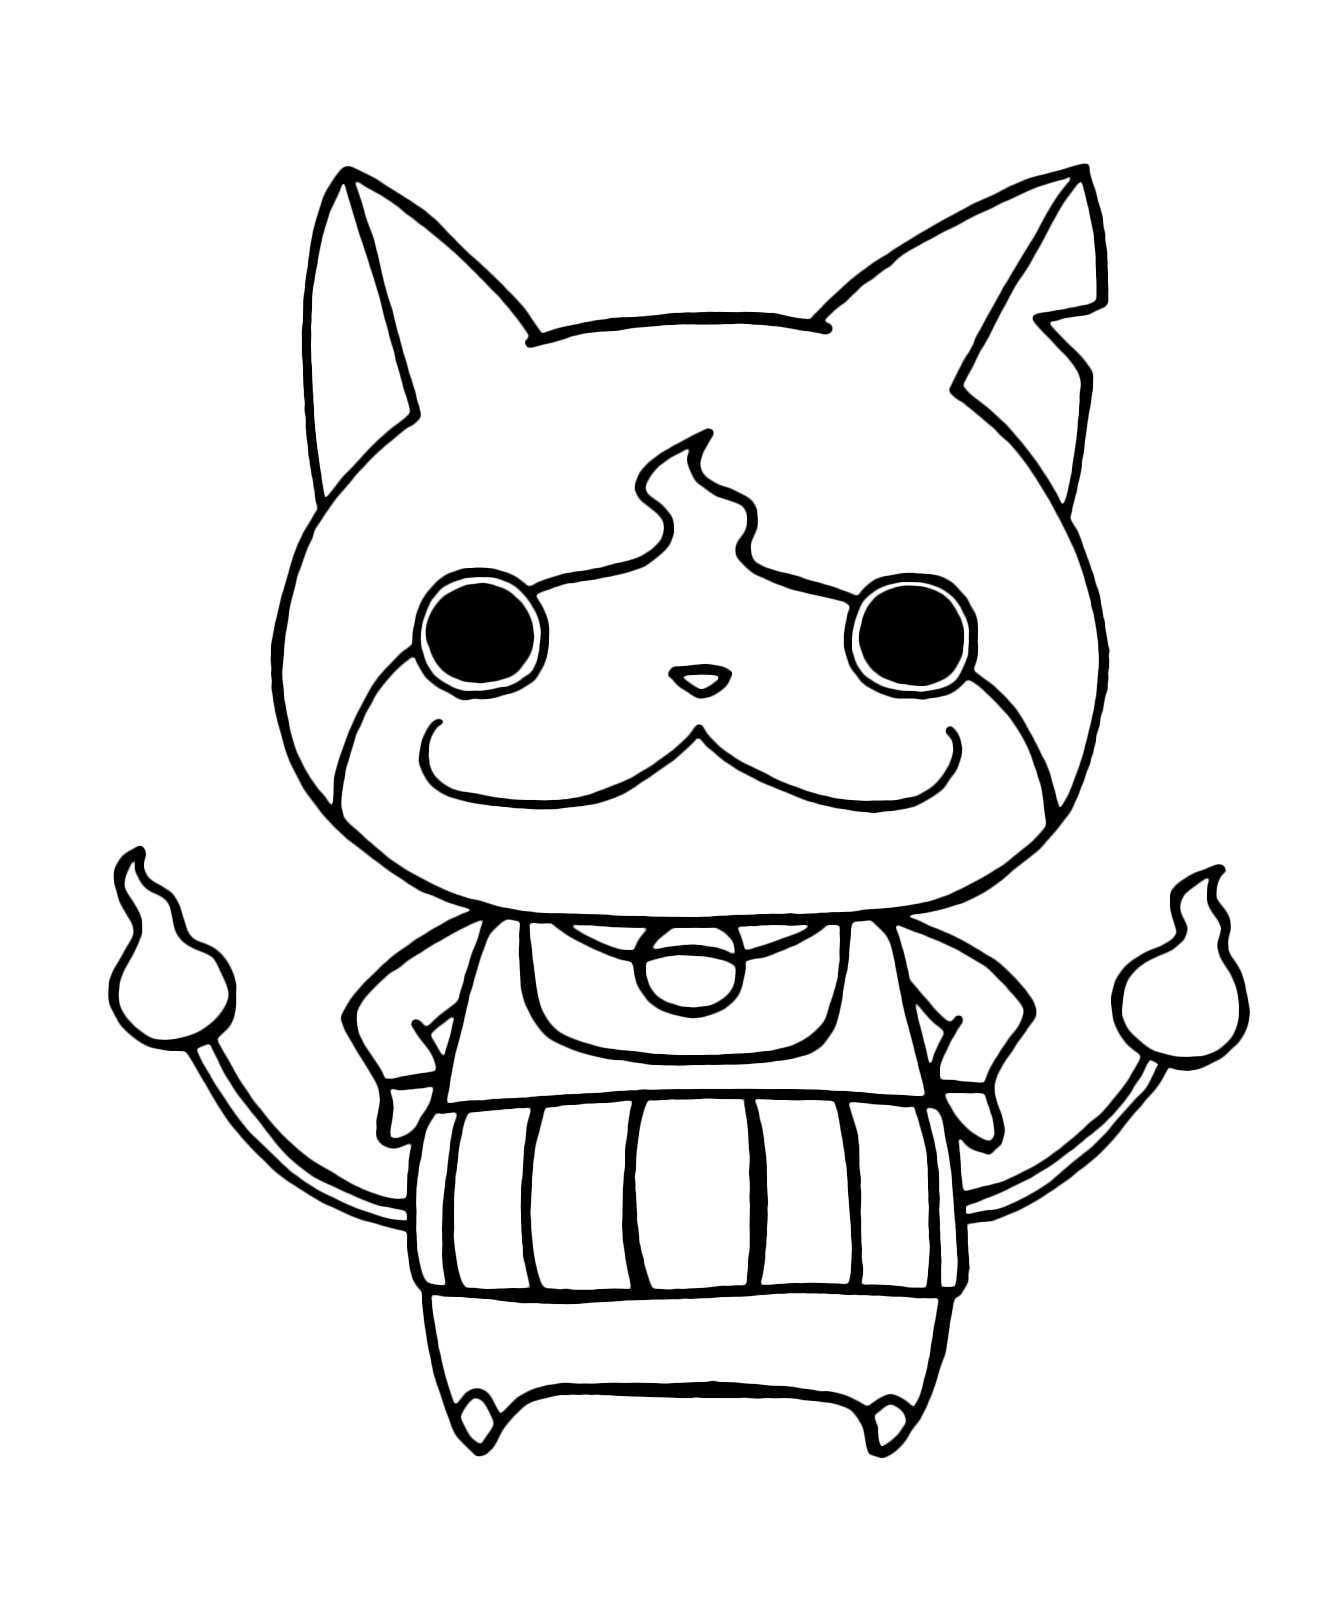 Kai Watch Yo Kai Jibanyan with His Arms On His Hips Download Of Yo Kai Watch Coloring Pages to Print to Print